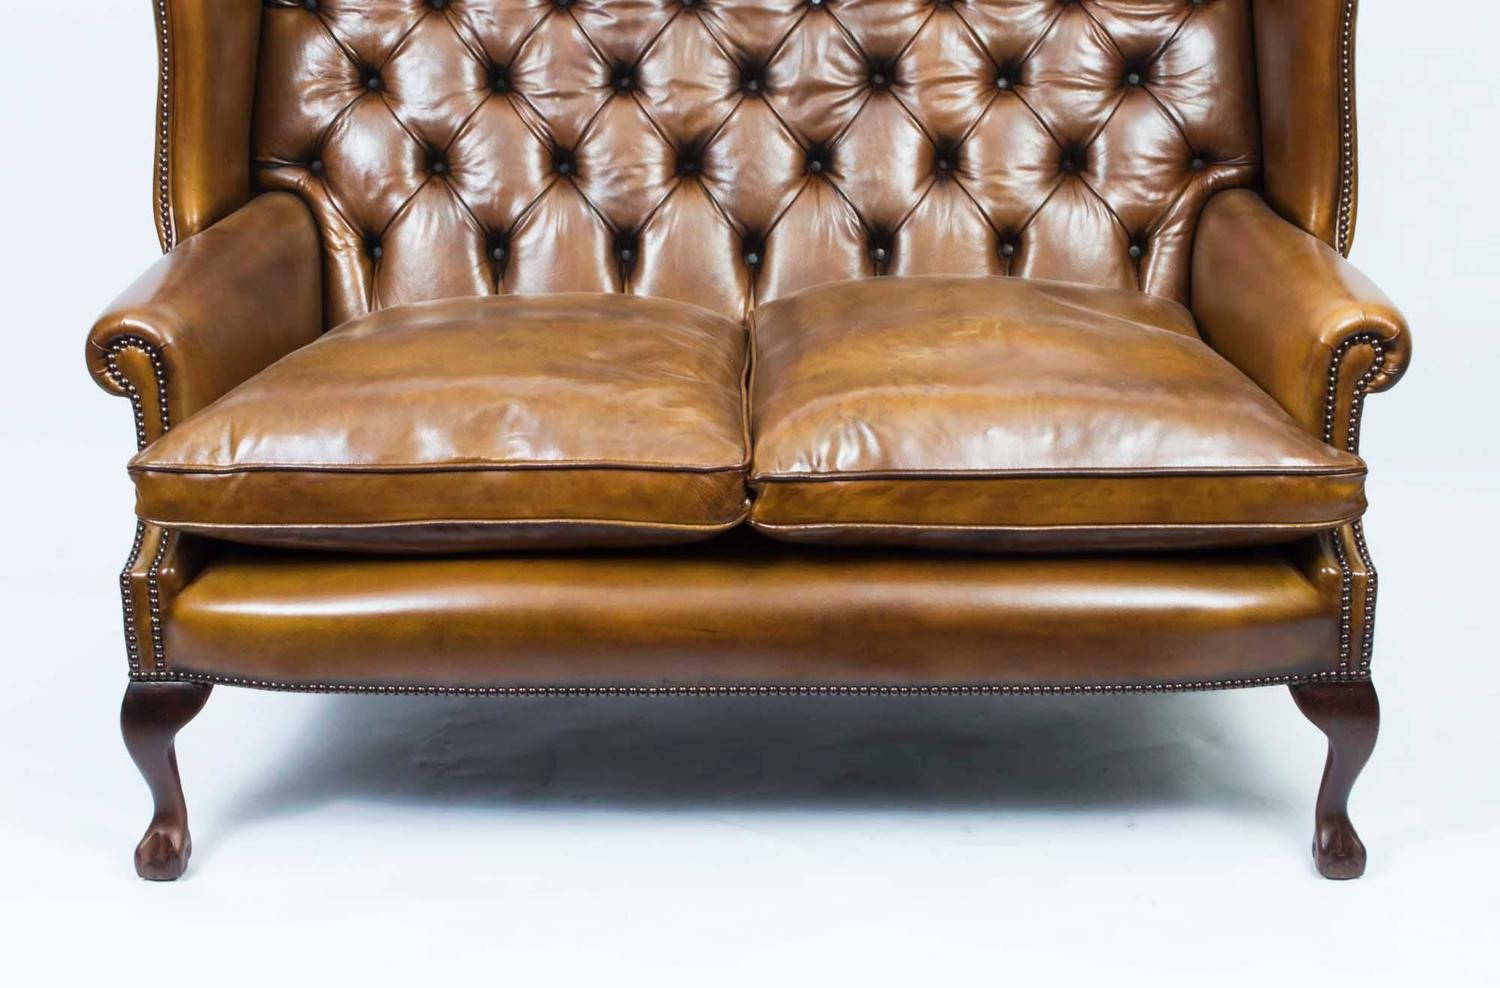 English Leather Chippendale Club Settee Sofa In Cognac For Sale At 1stdibs